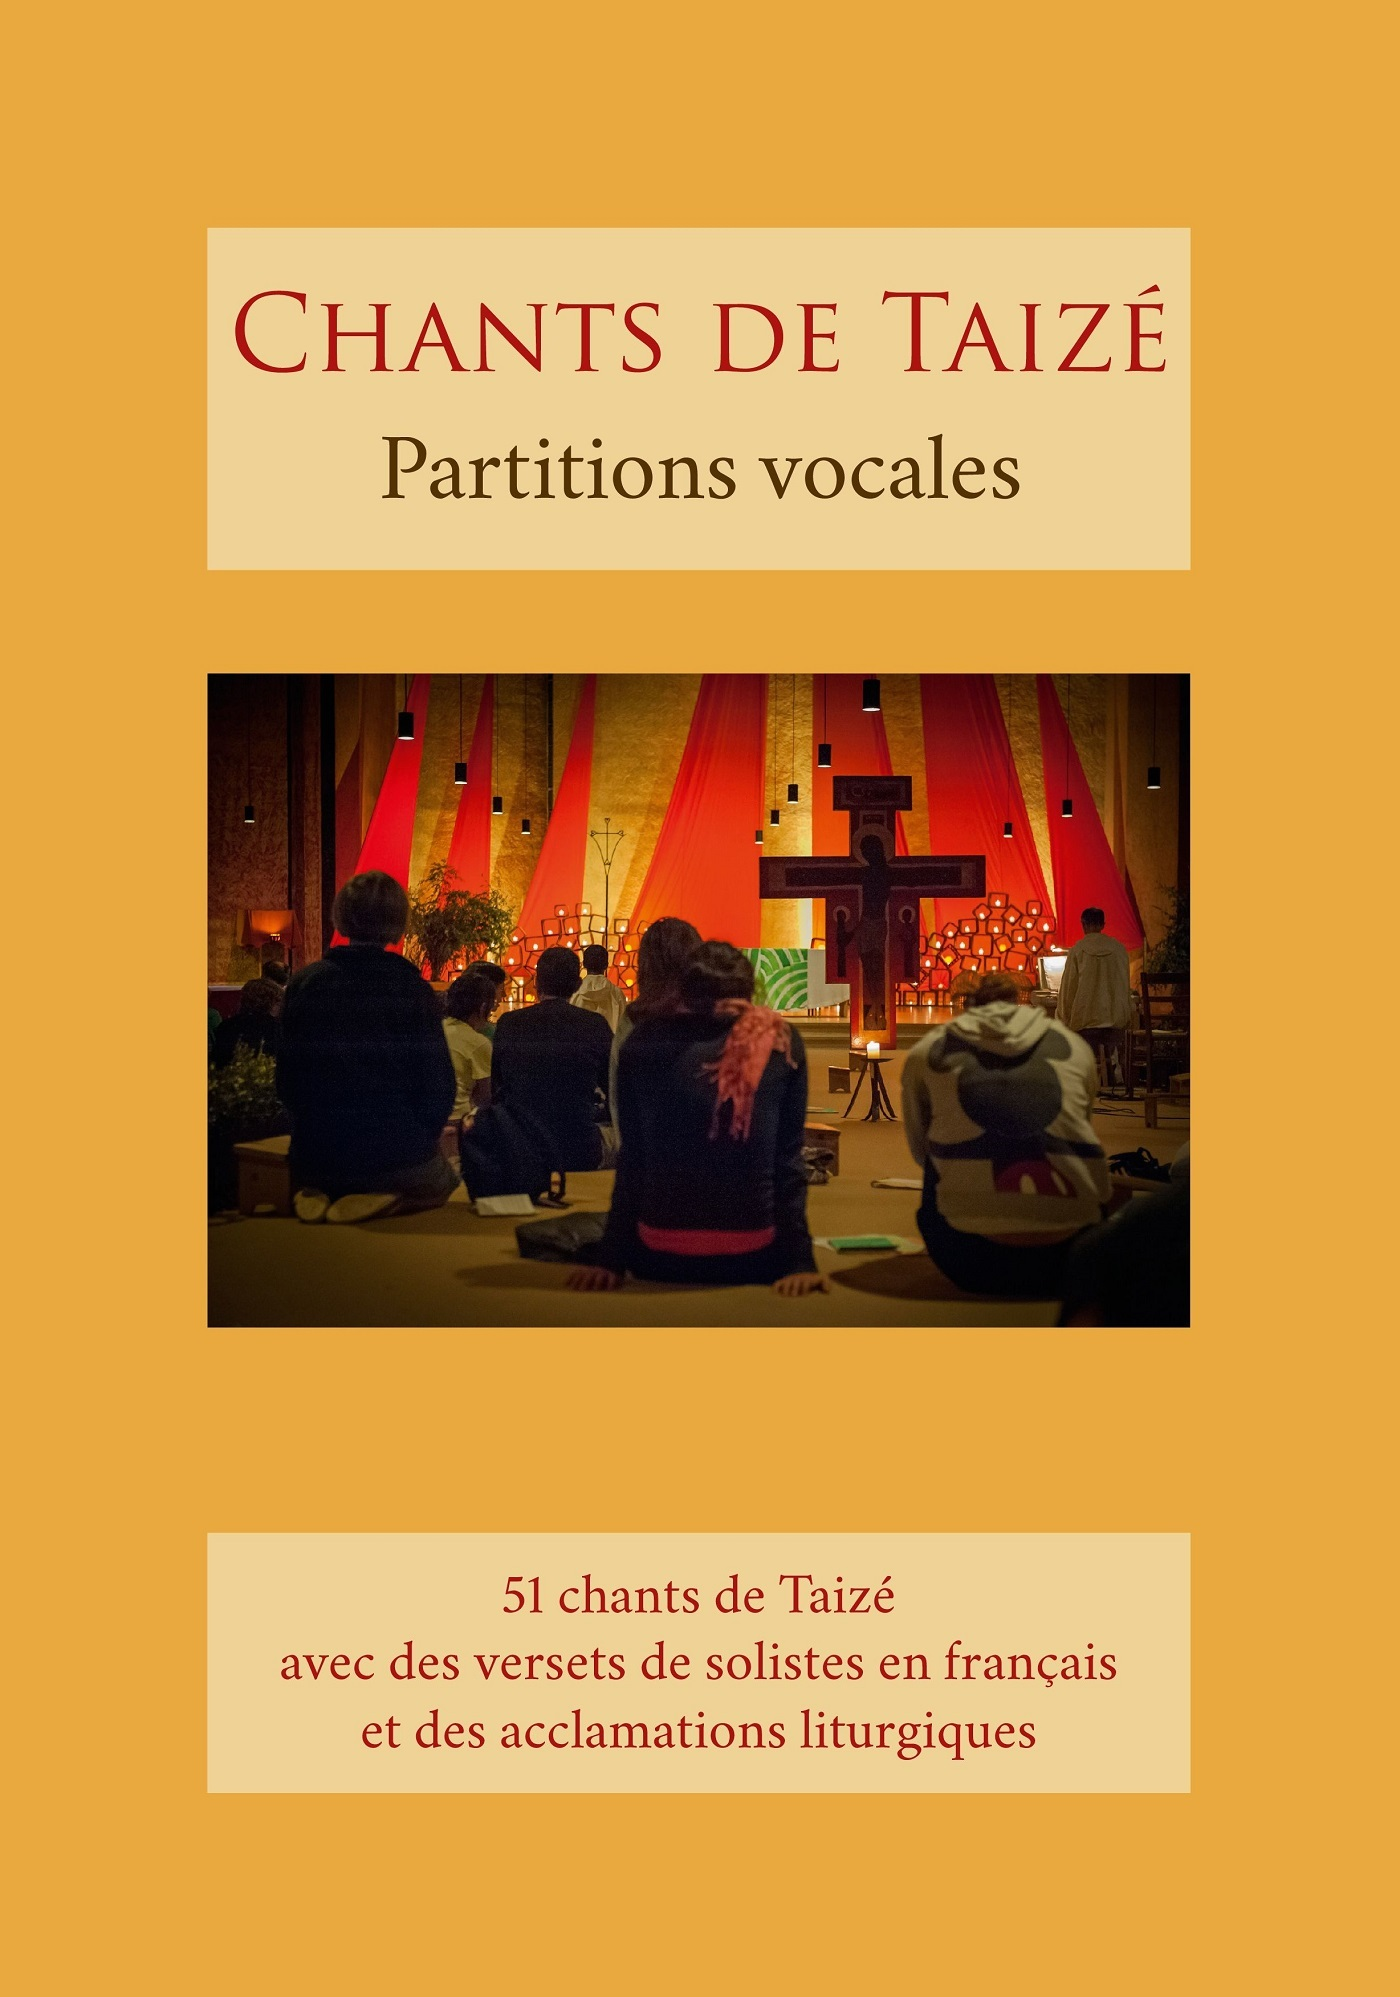 CHANTS DE TAIZE - PARTITIONS VOCALES